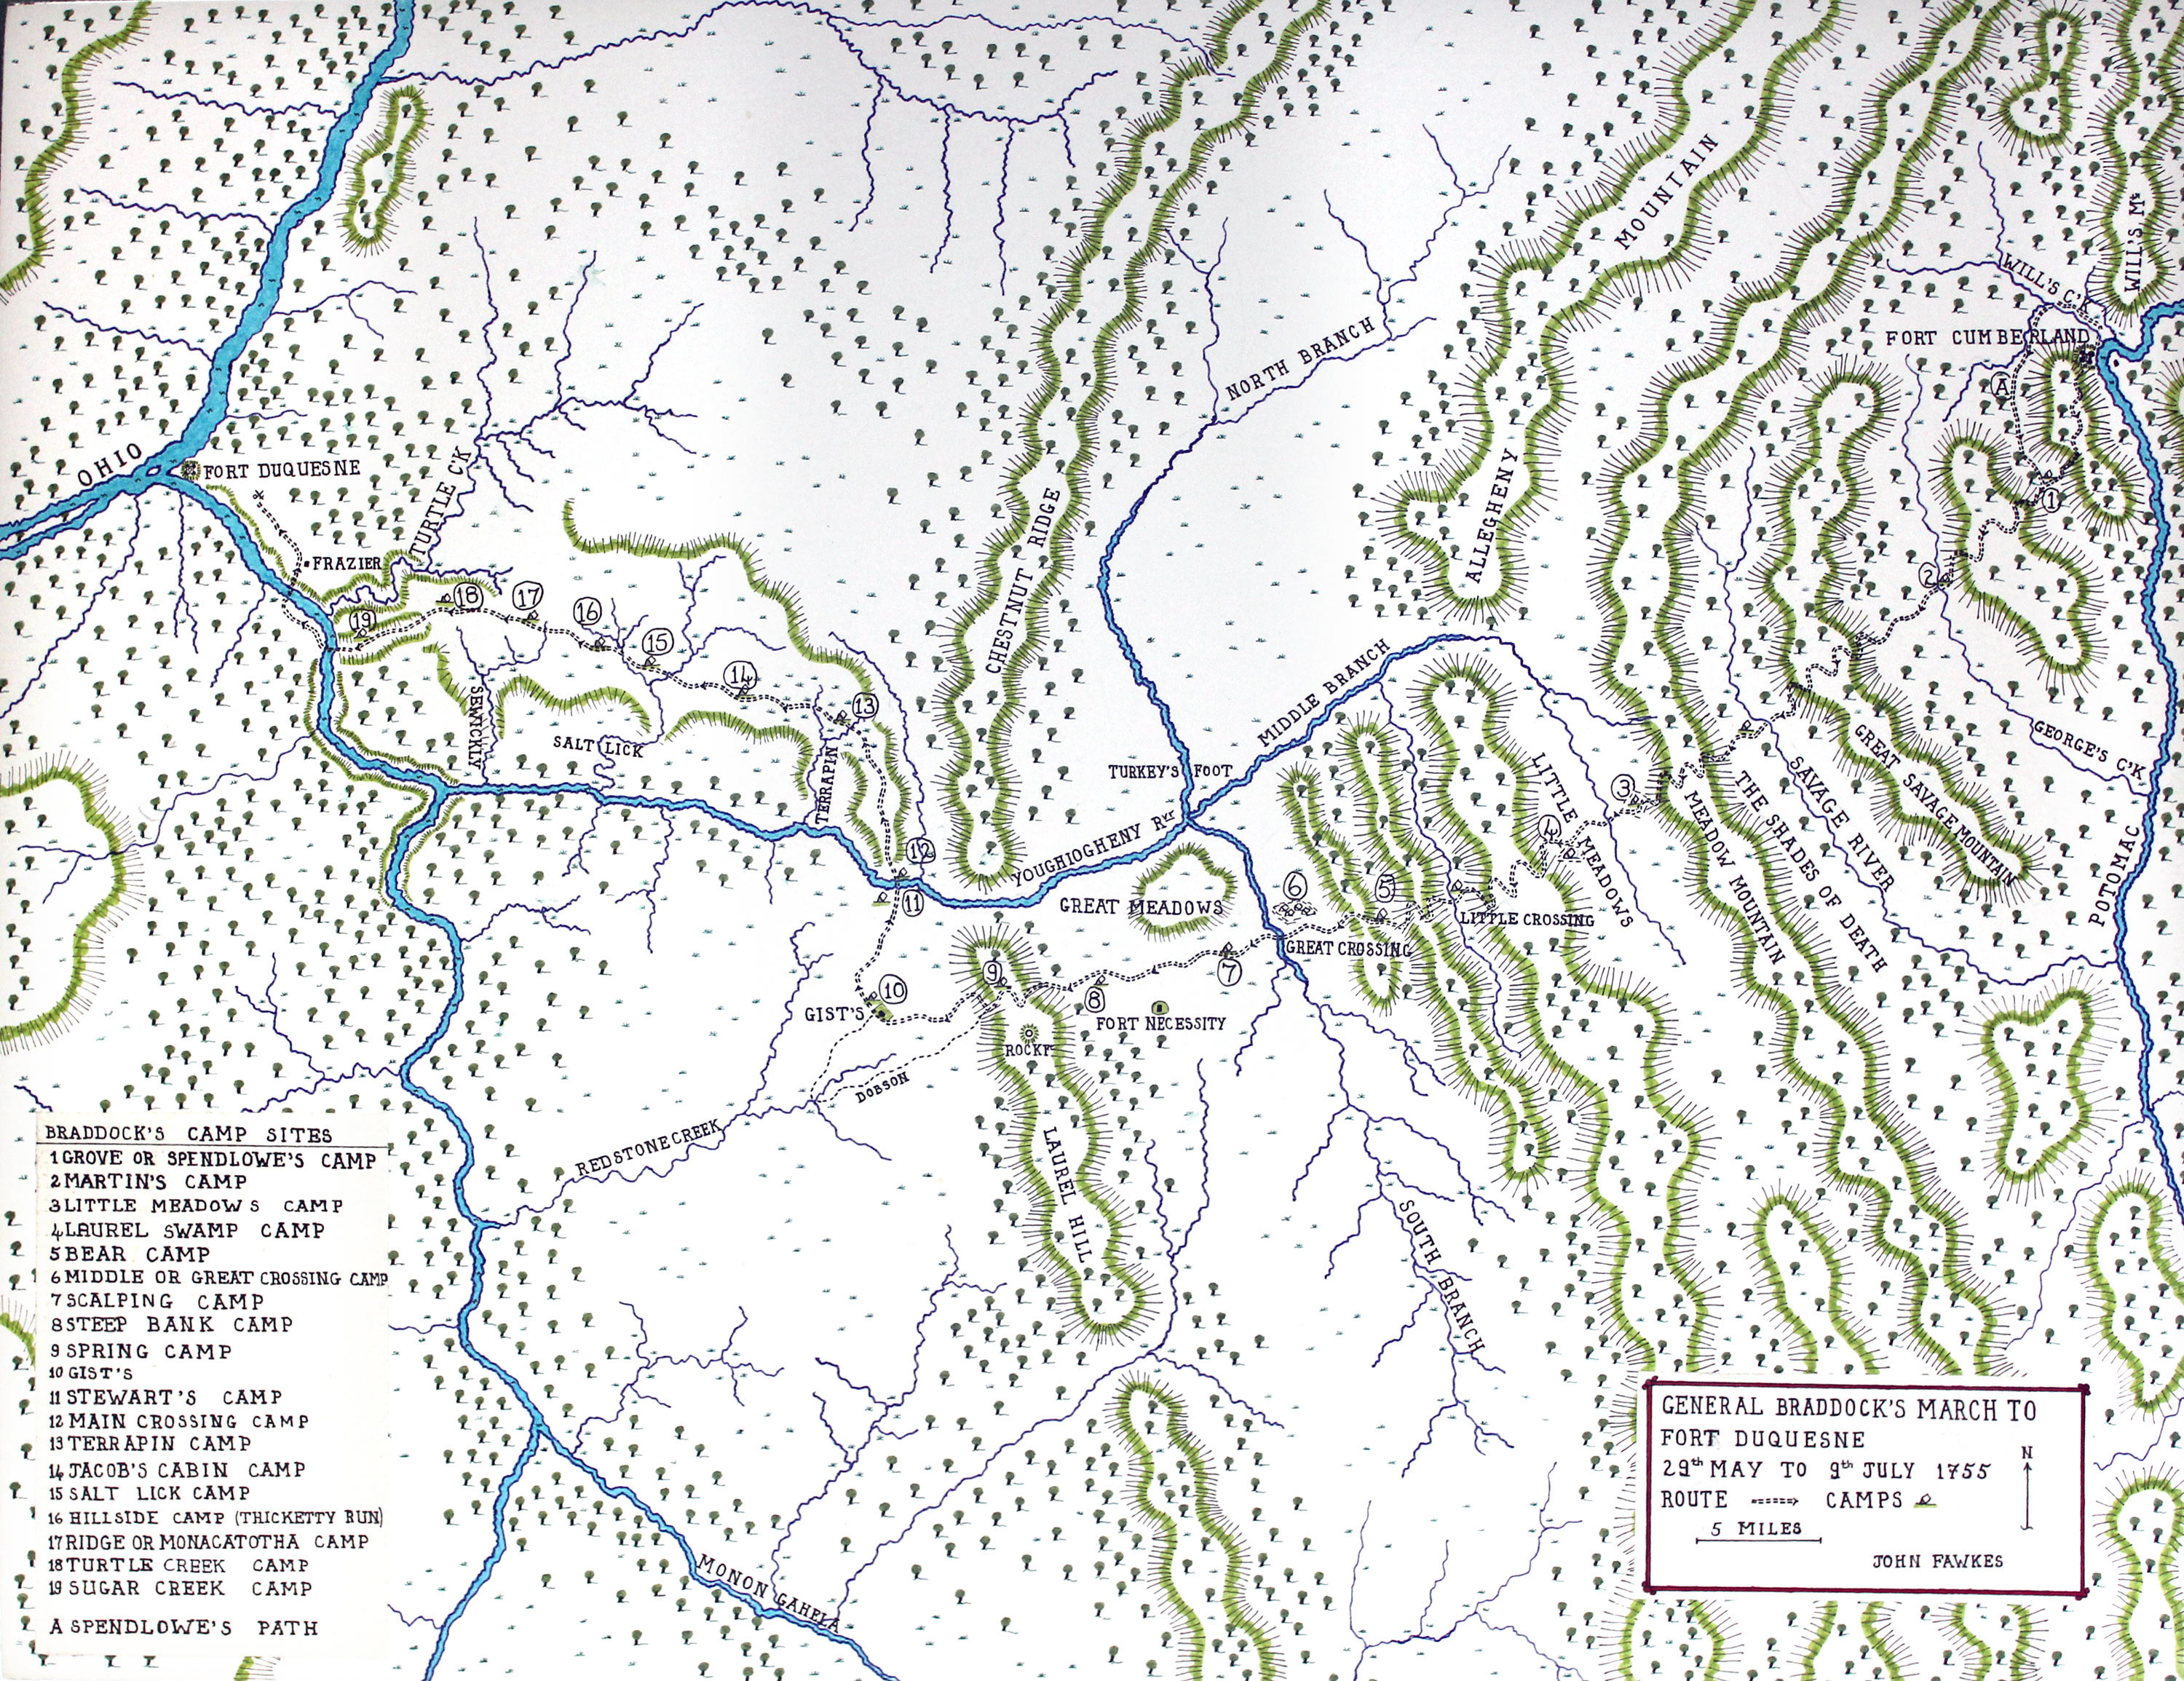 Map of General Braddock's march from Fort Cumberland to Terrapin Camp on his way to Fort Duquesne on the Monongahela River, May to July 1755, showing A Spendlow's Path and camps at 1 Grove 2 Martin's 3 Little Meadows 4 Laurel 5 Bear 6 Great Crossing 7 Scalping 8 Steep Bank 9 Spring 10 Gist's 11 Stewart's 12 Main Crossing 13 Terrapin 14 Jacob's 15 Salt Lick 16 Hillside 17 Ride 18 Turtle 19 Sugar: Map by John Fawkes